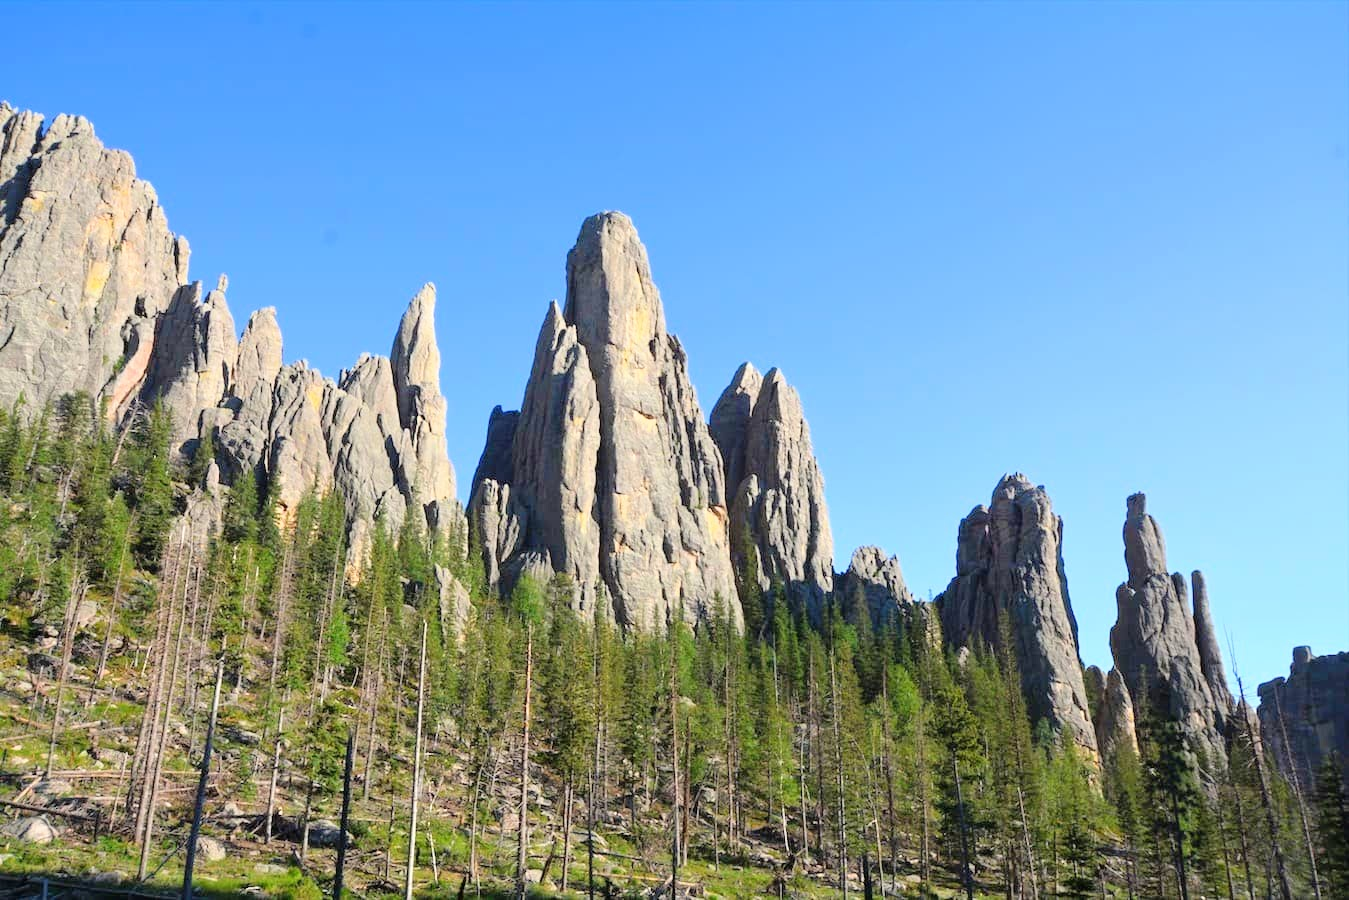 Cathedral Spires rise above the floor of Custer State Park in the Black Hills of South Dakota